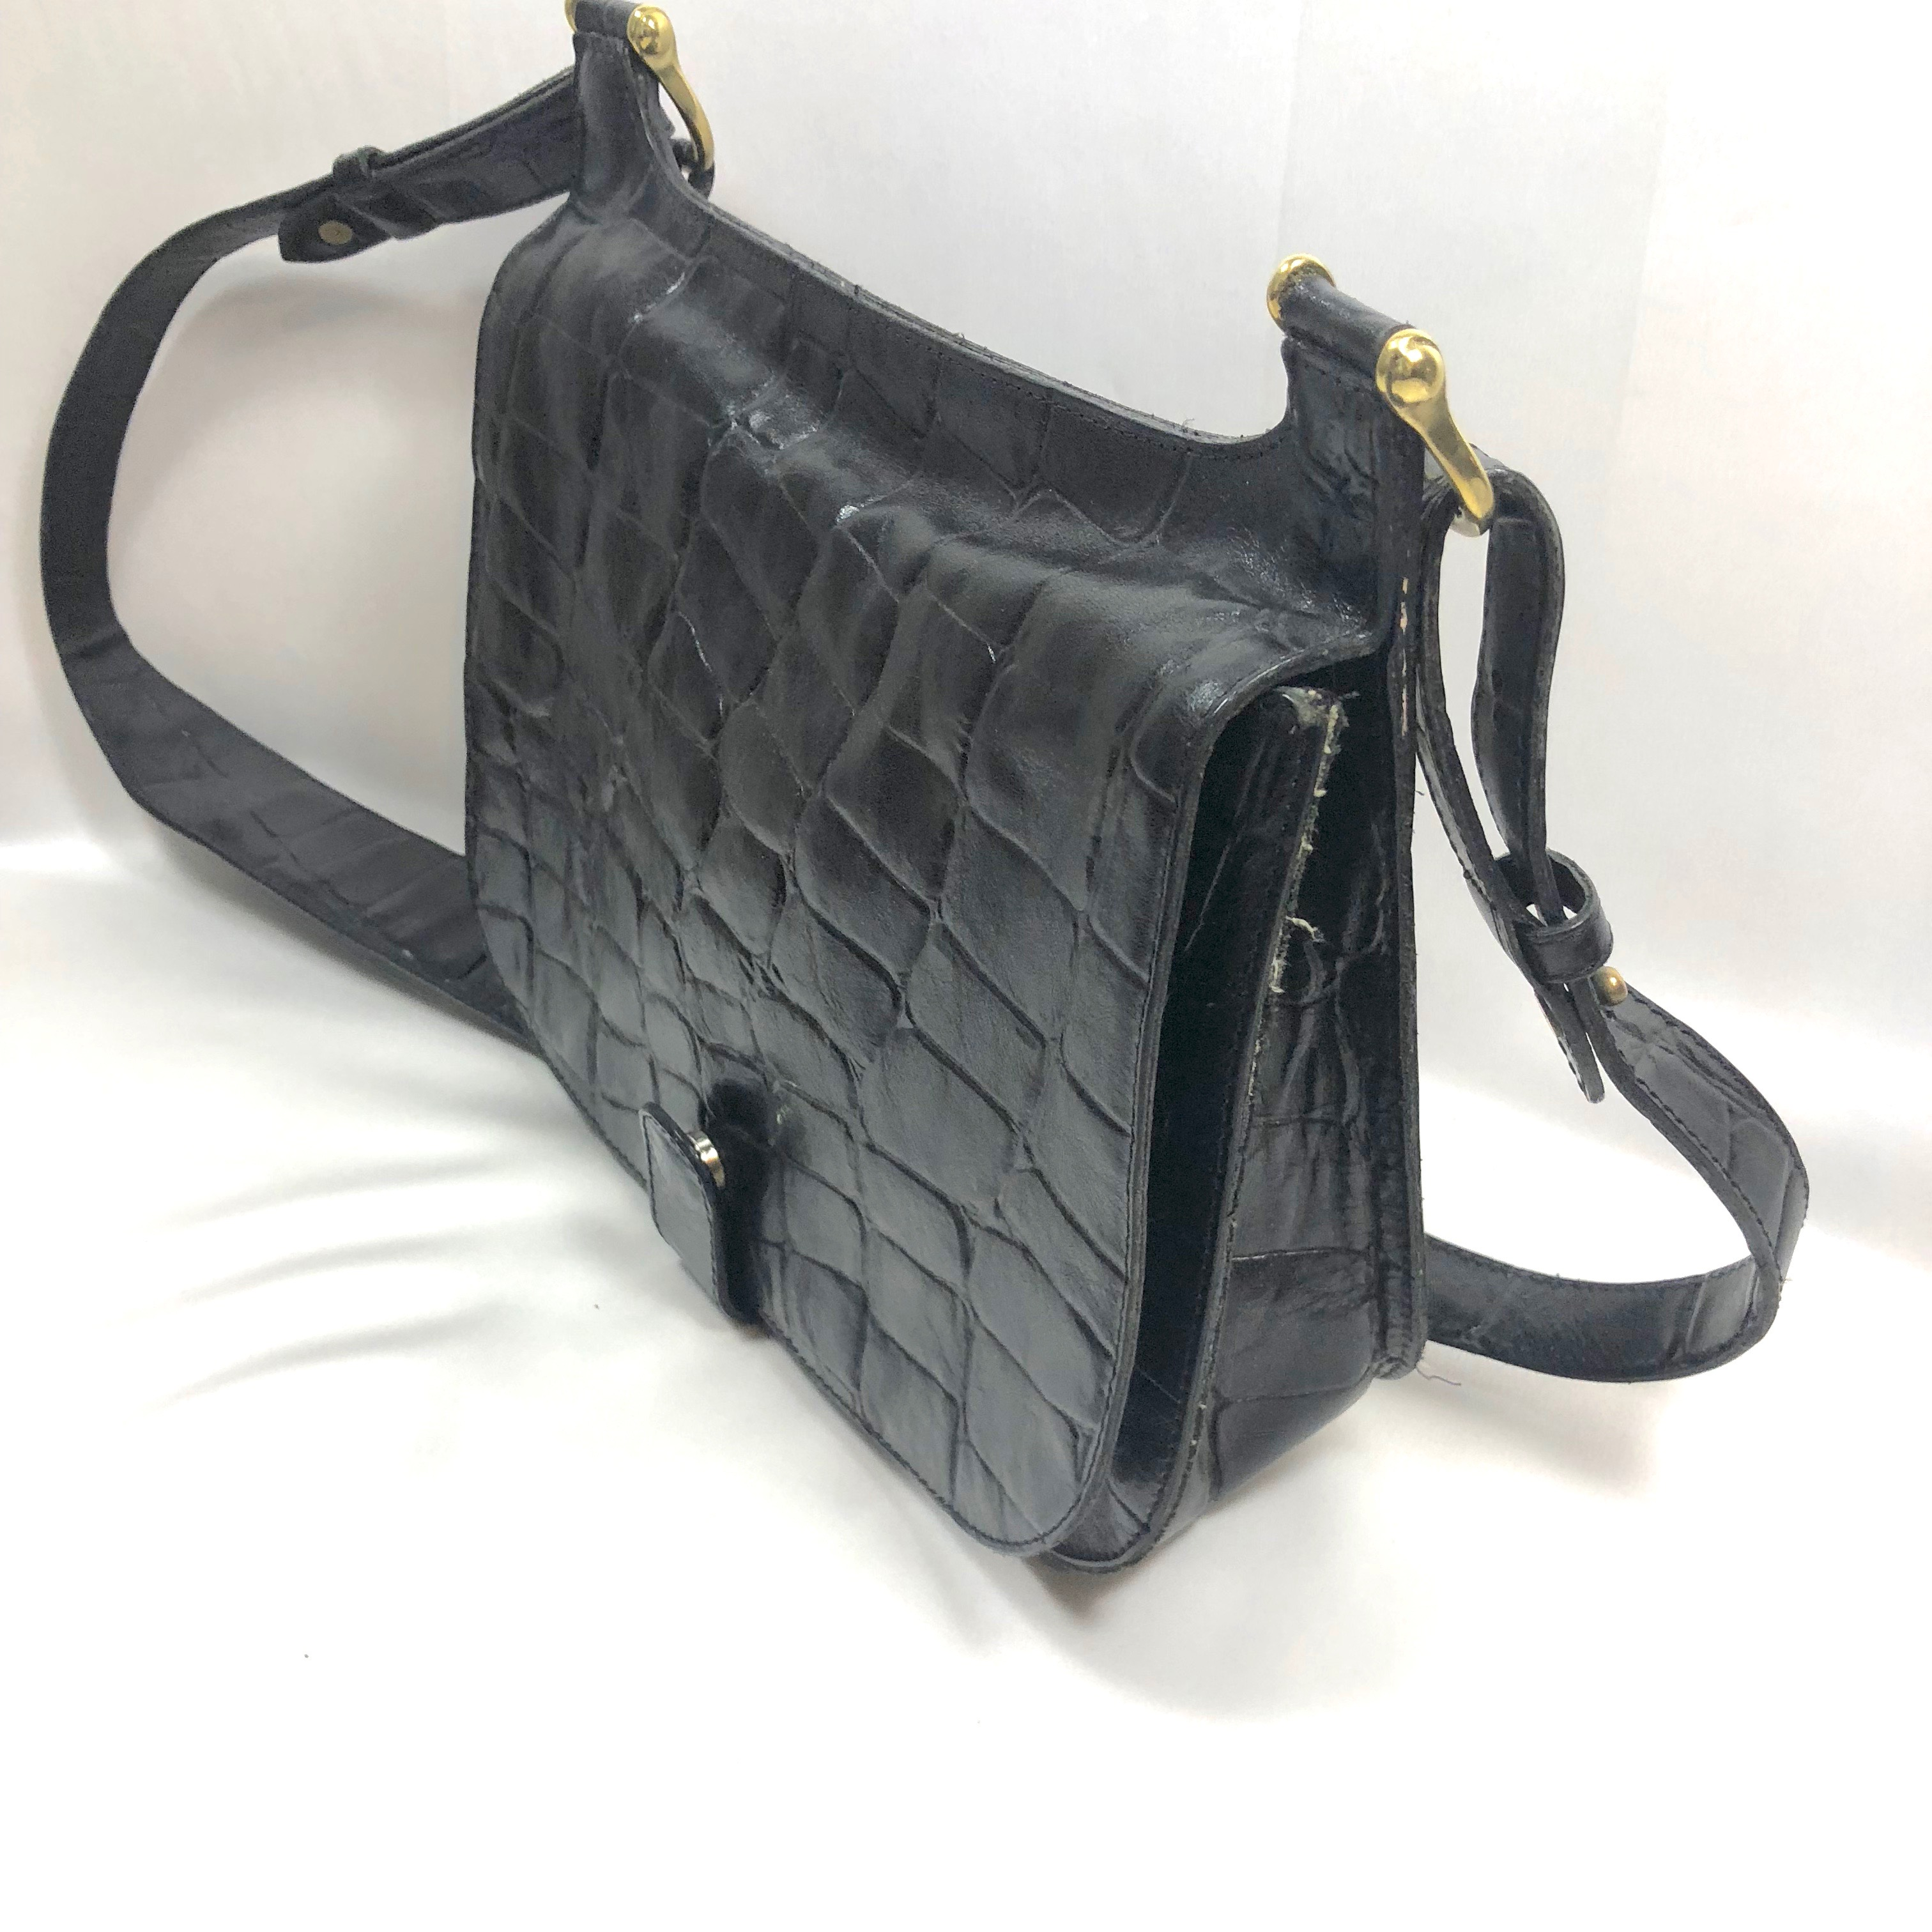 35b02cf083dd ... bag a5b4b 0c2ab new arrivals mulberry embossed leather shoulder 88aac  ce65c ...